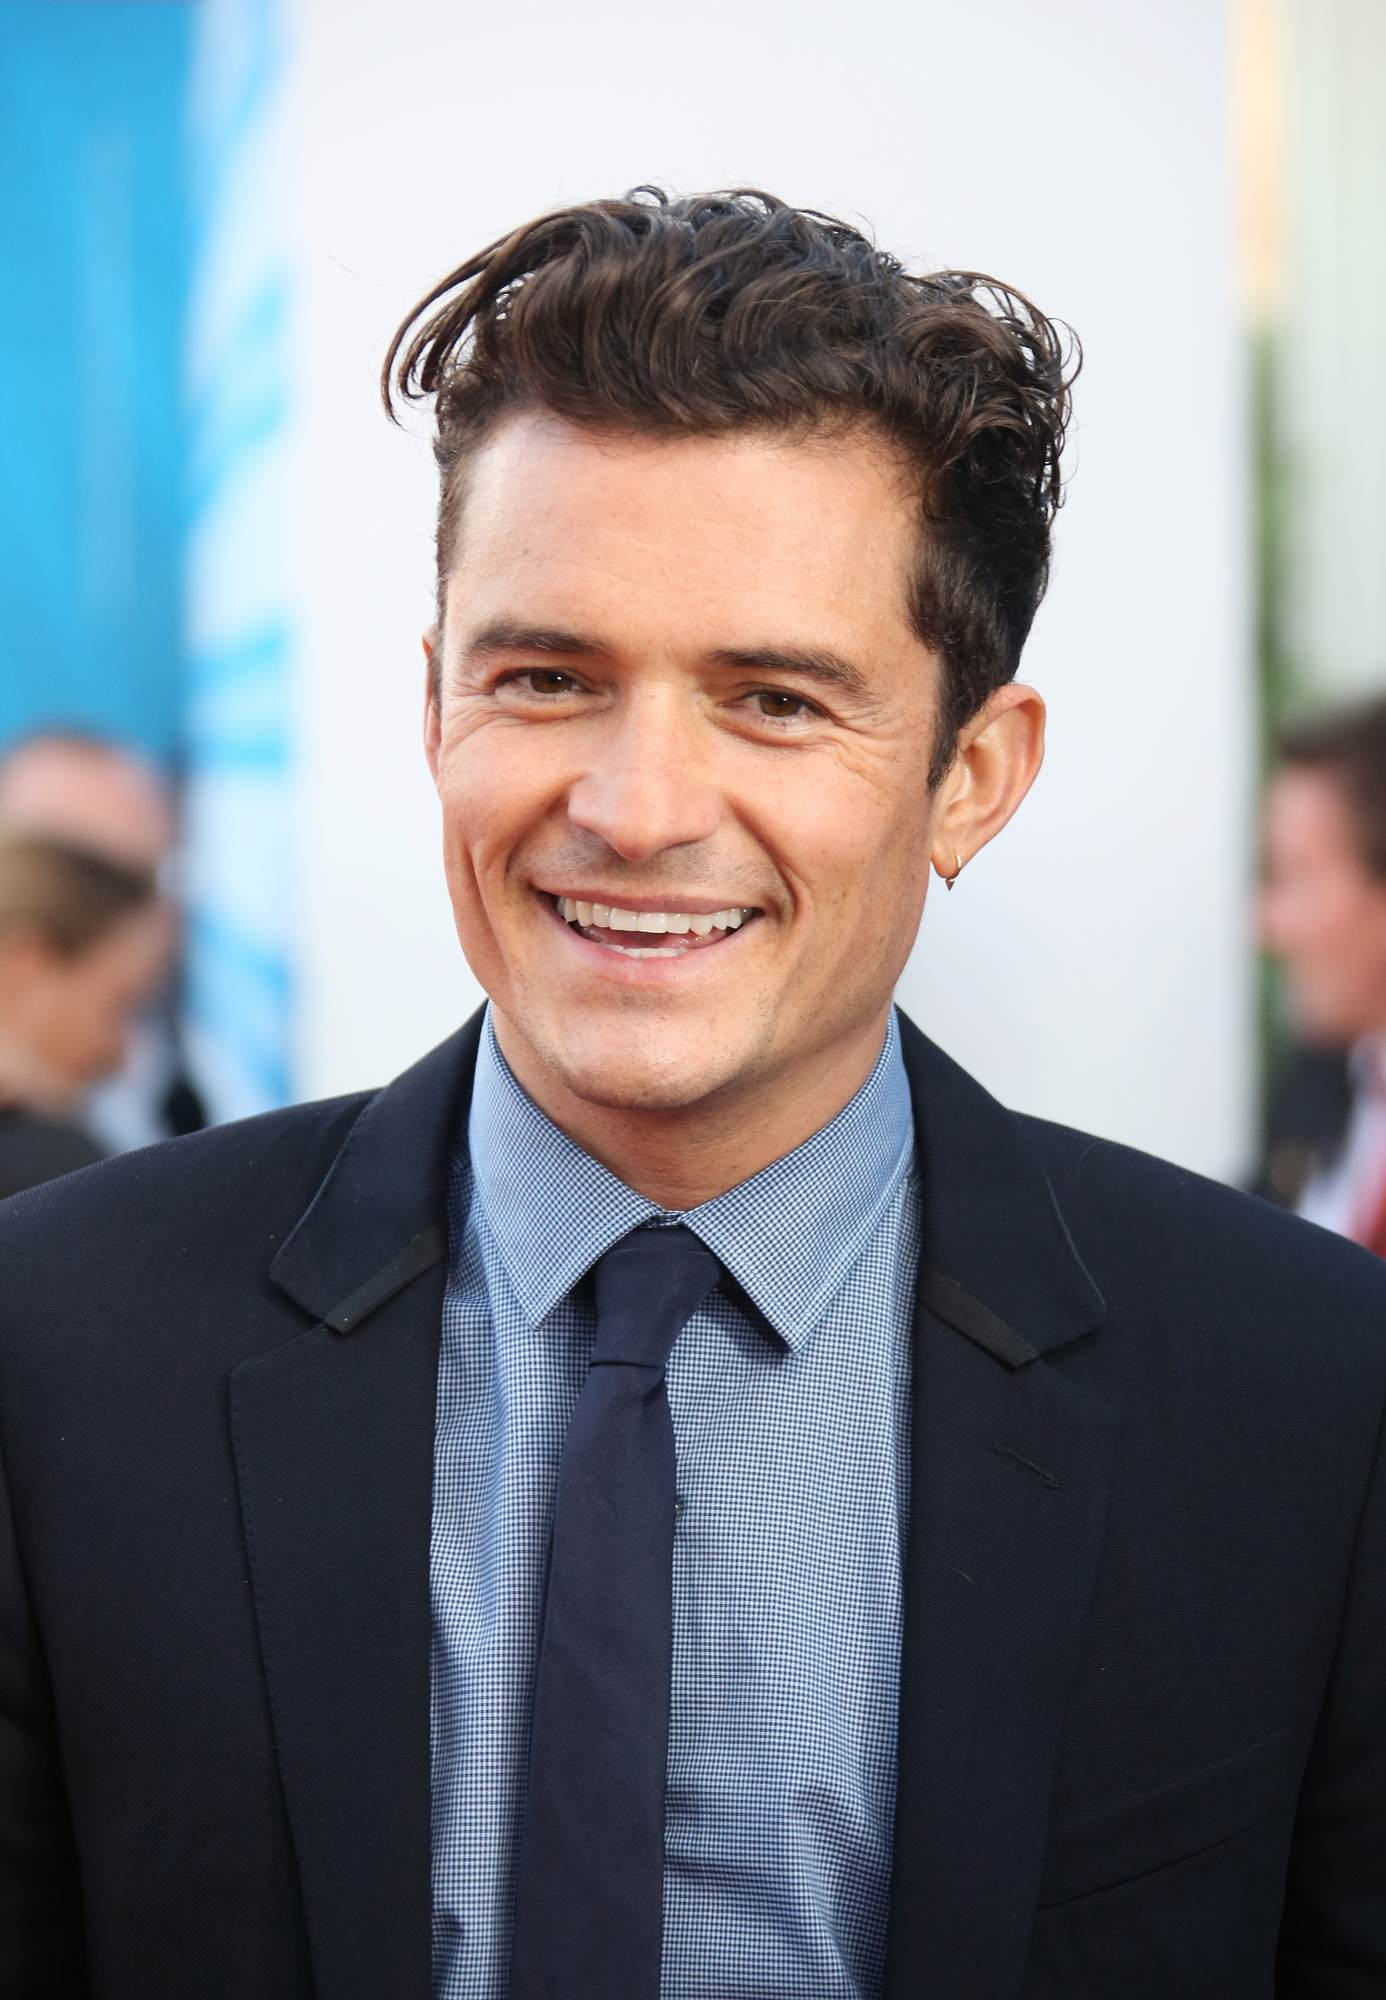 1000+ images about Orlando Bloom on Pinterest | Orlando bloom